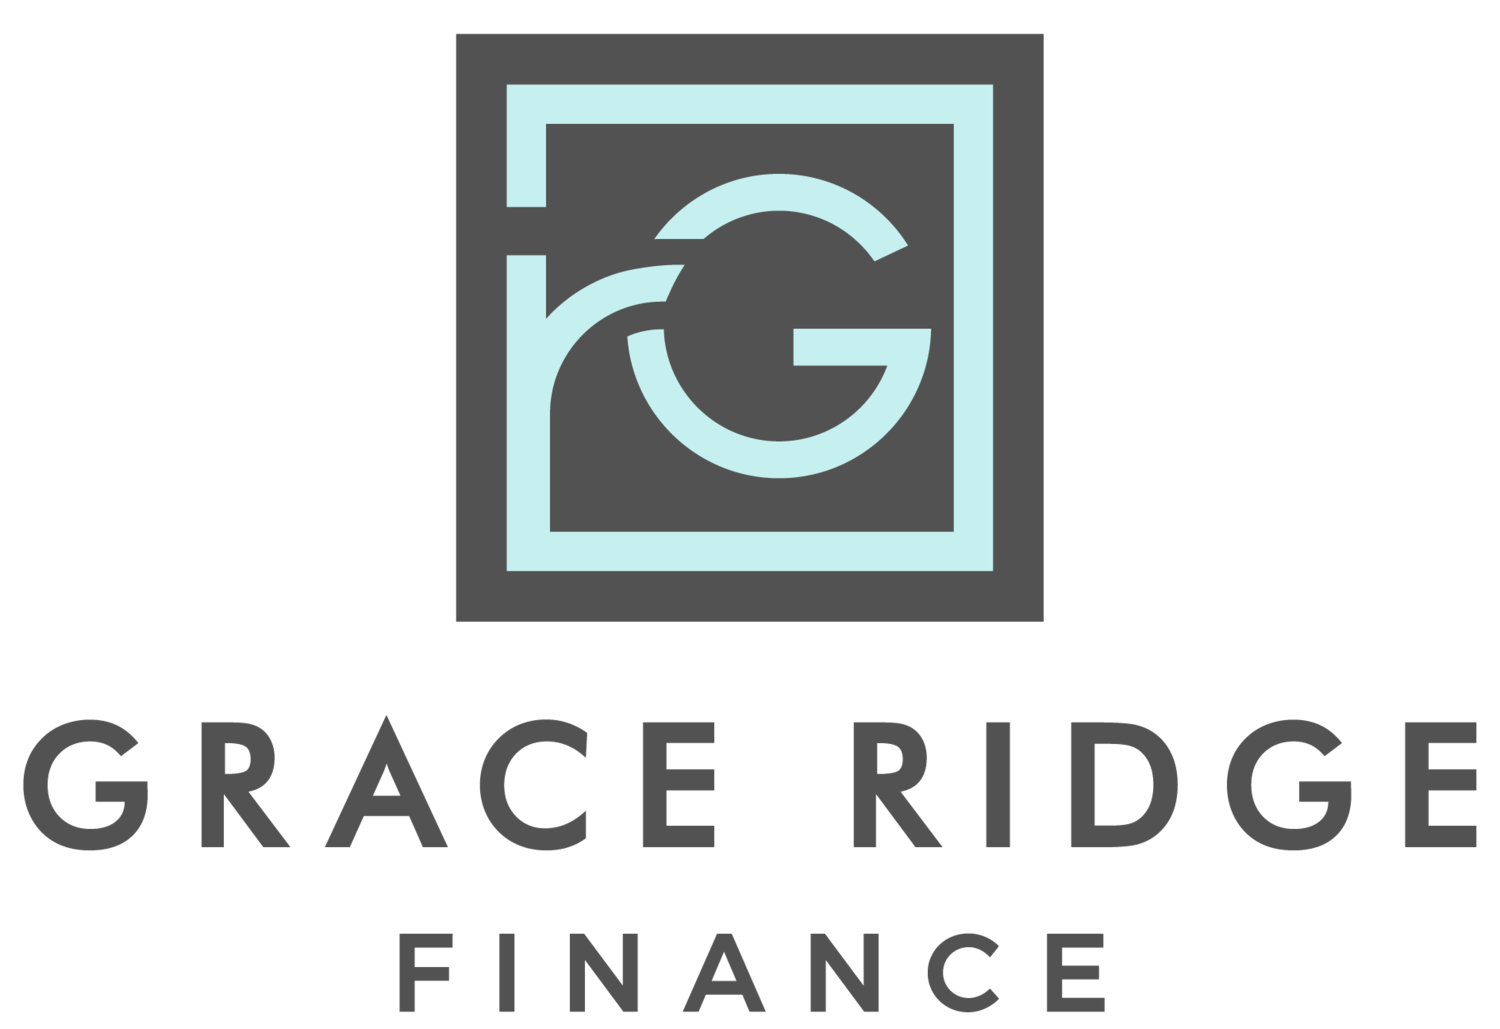 Grace Ridge Finance